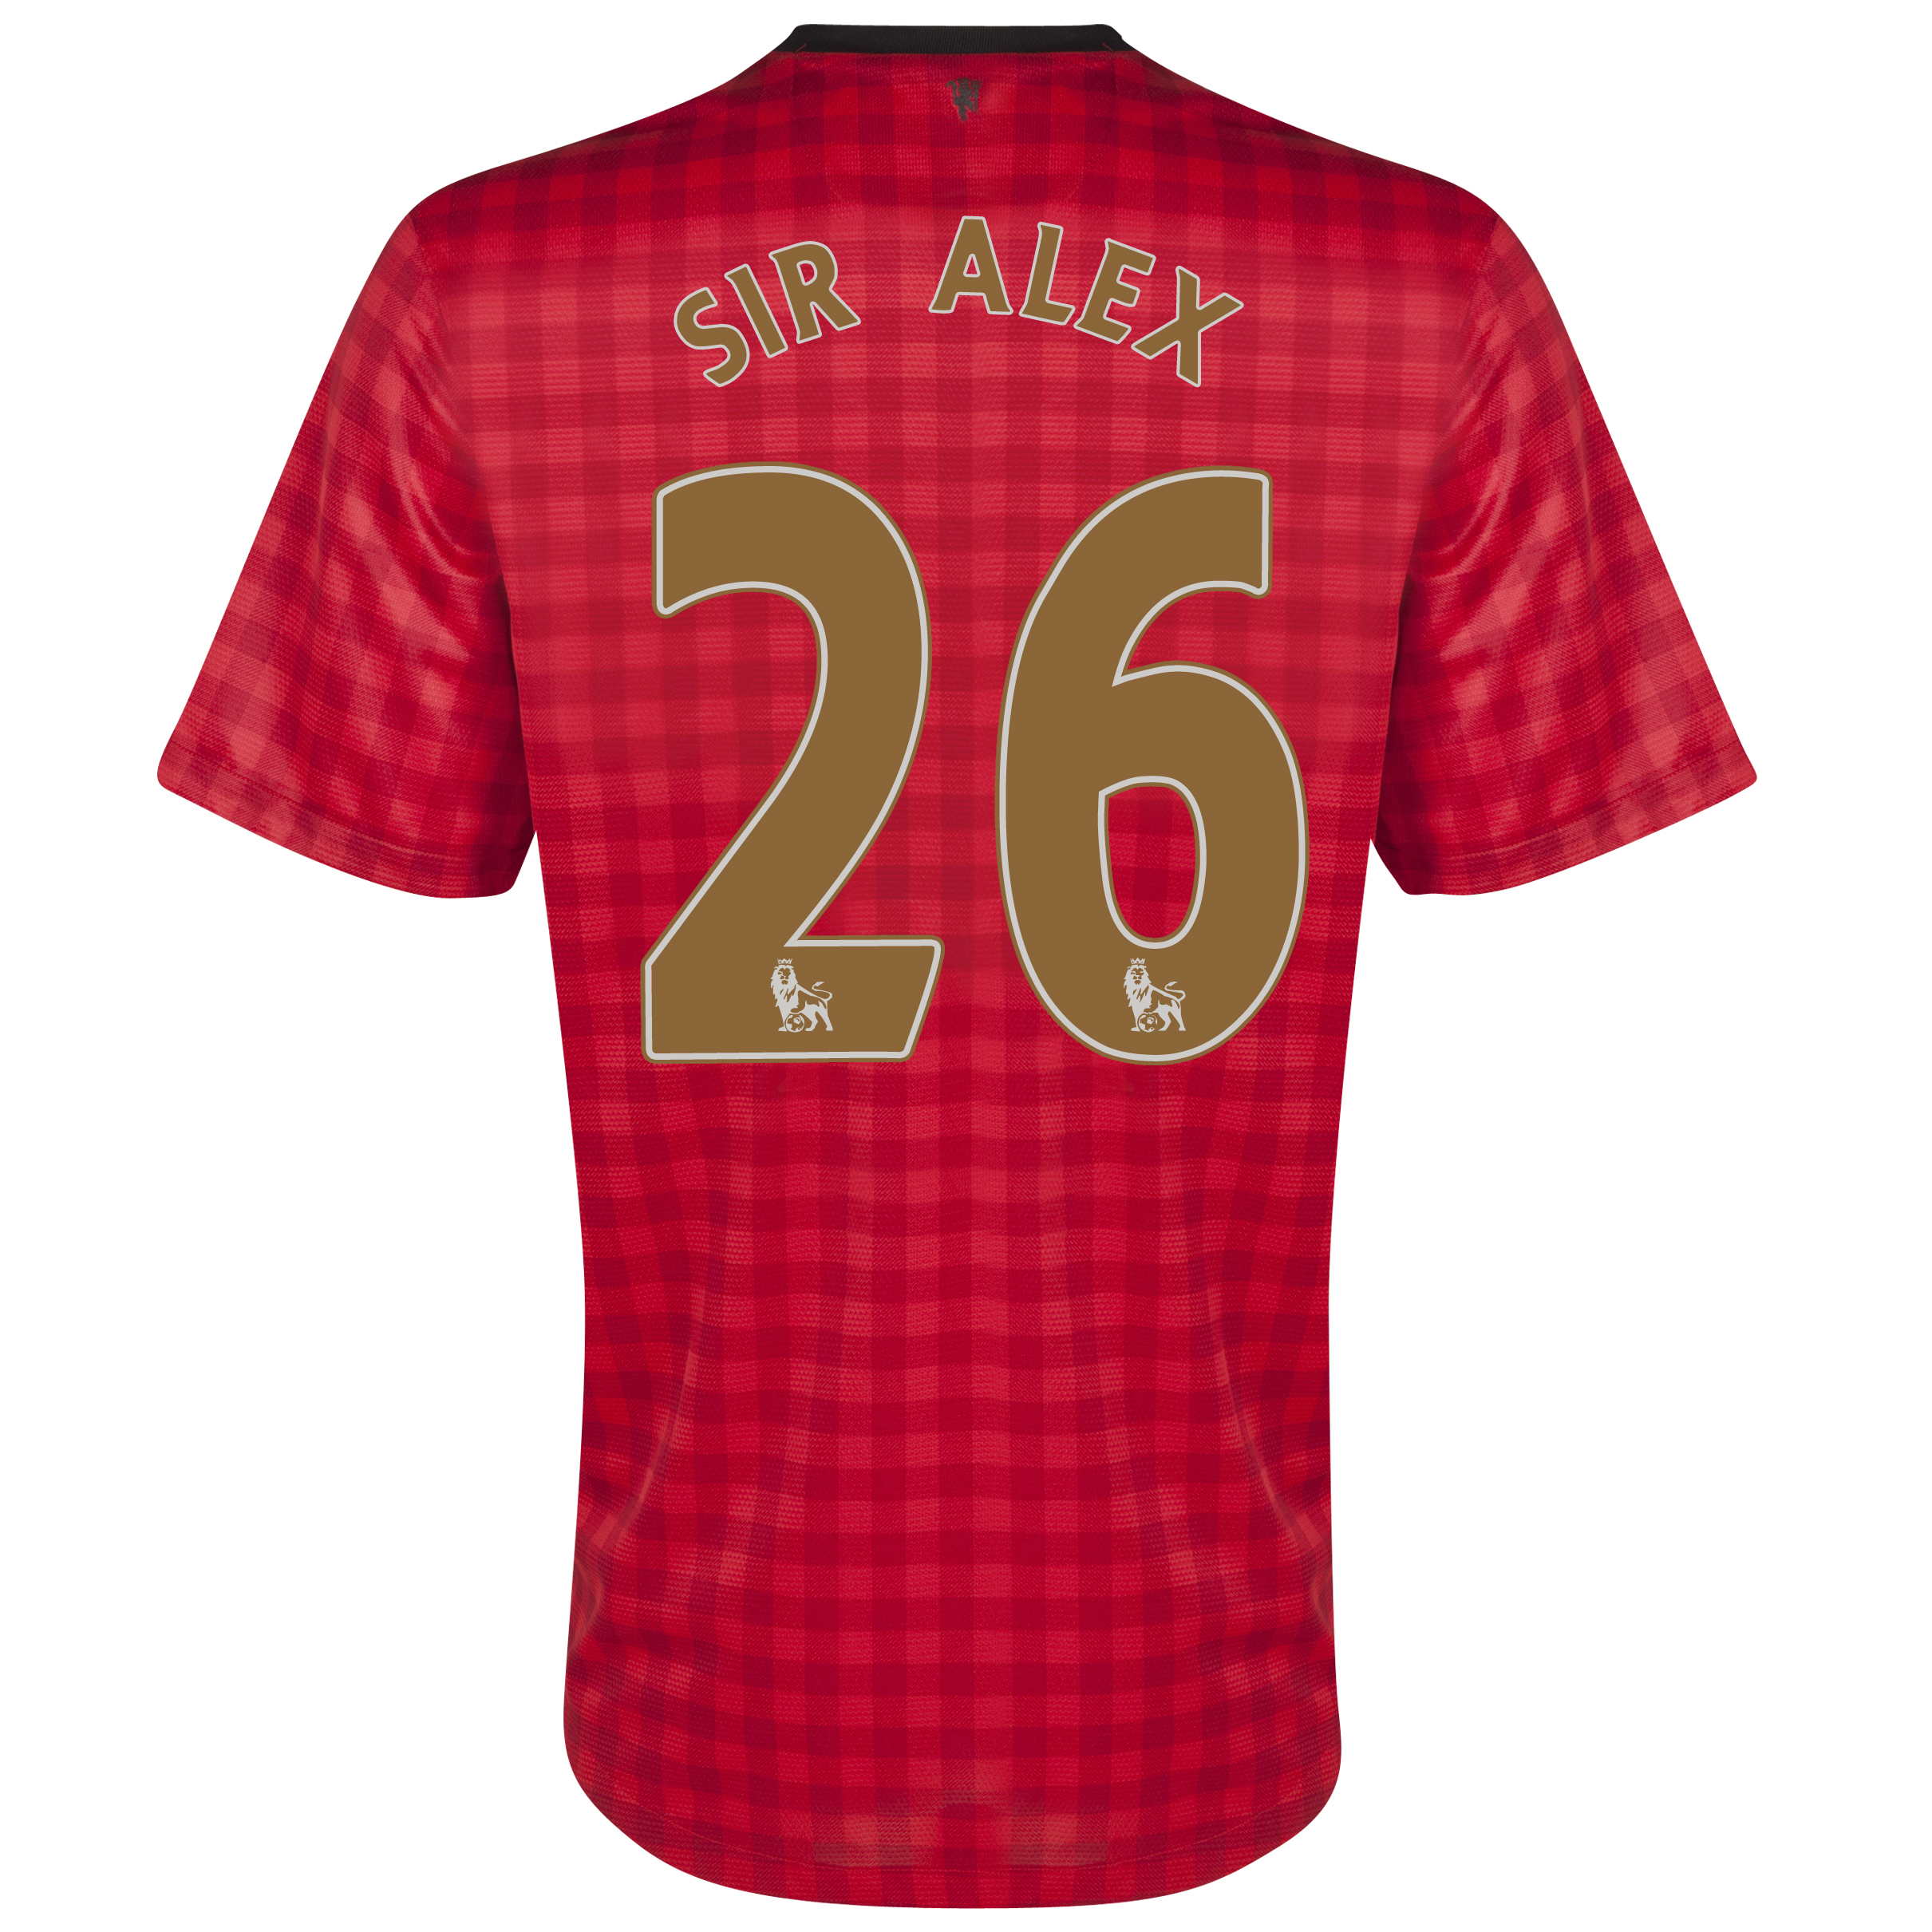 Manchester United Home Shirt 2012/13 with Sir Alex 26 printing